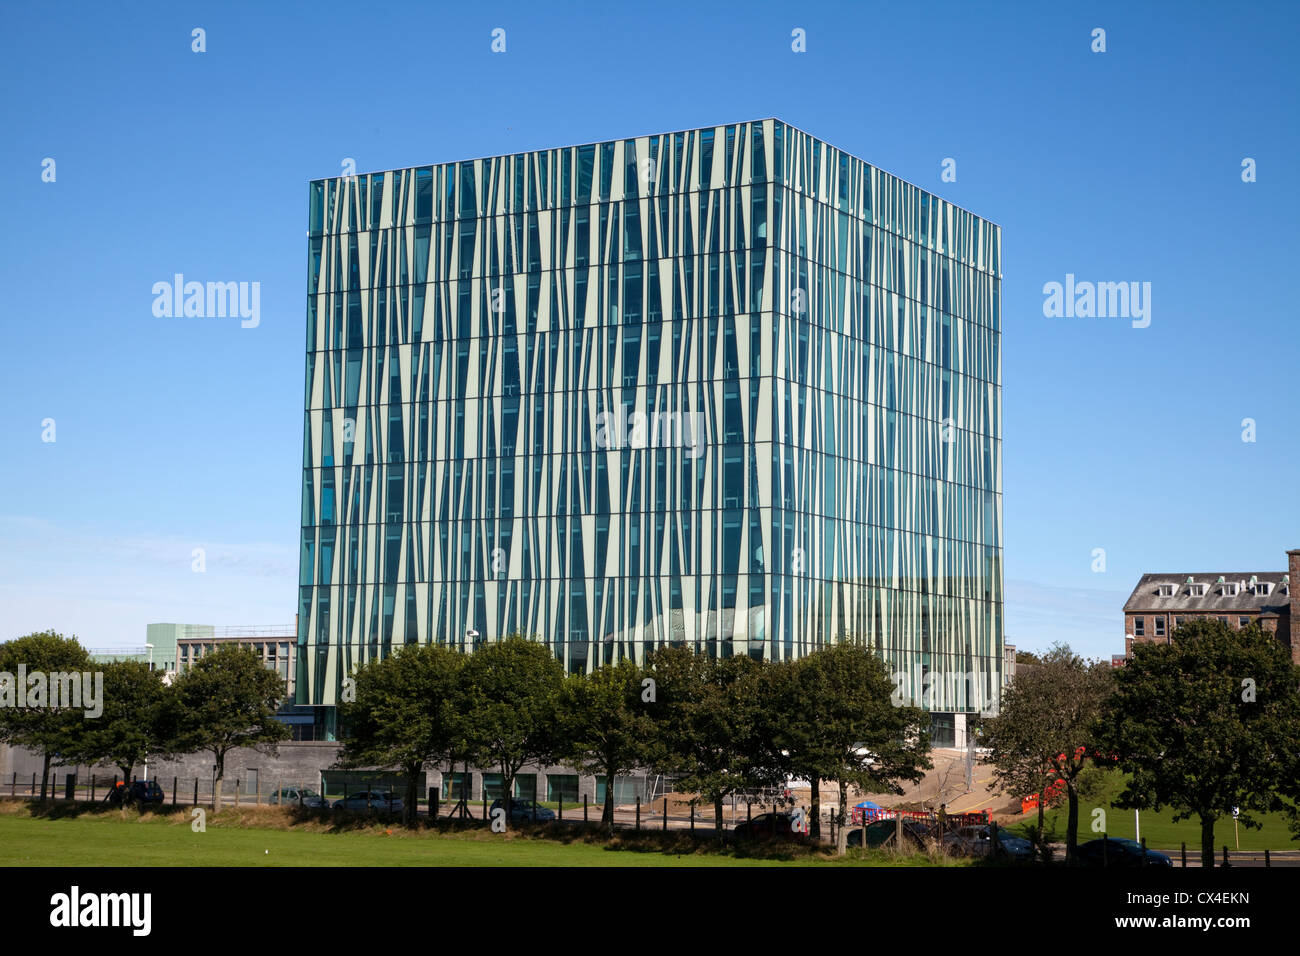 The New Library Building at Aberdeen University - Stock Image